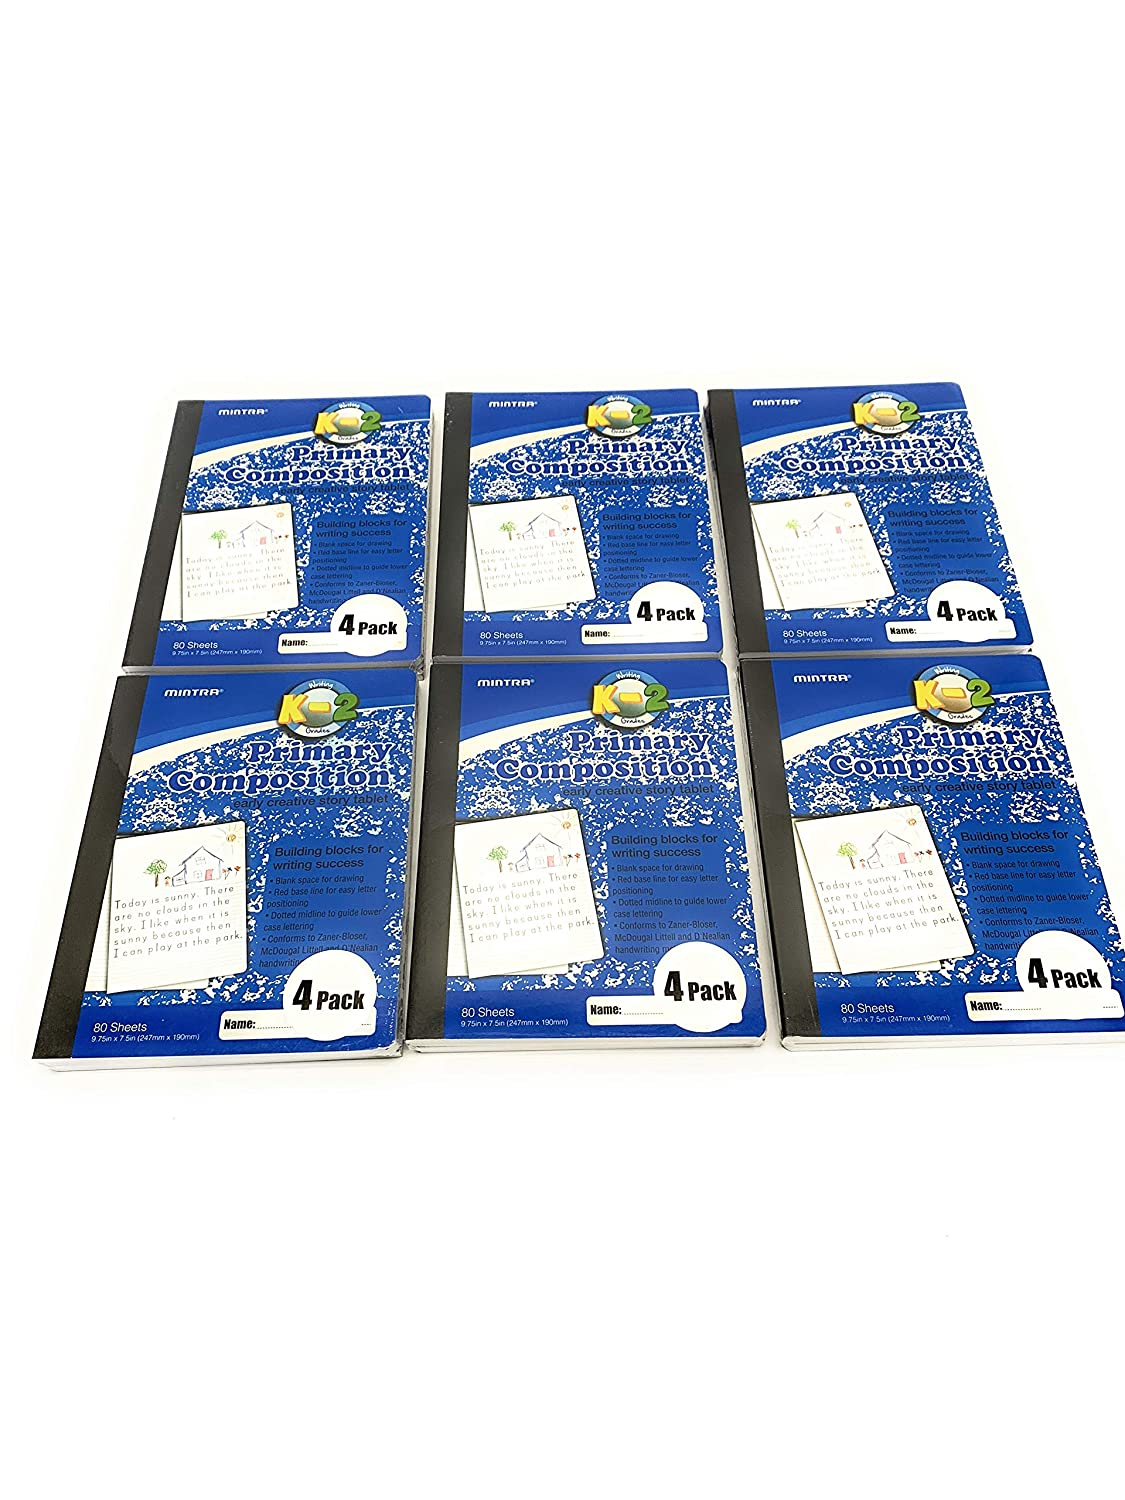 Primary Ruled 6-4pks Hardcover Grade K-2 Mintra Office Composition Books Creative 24 units Notebooks